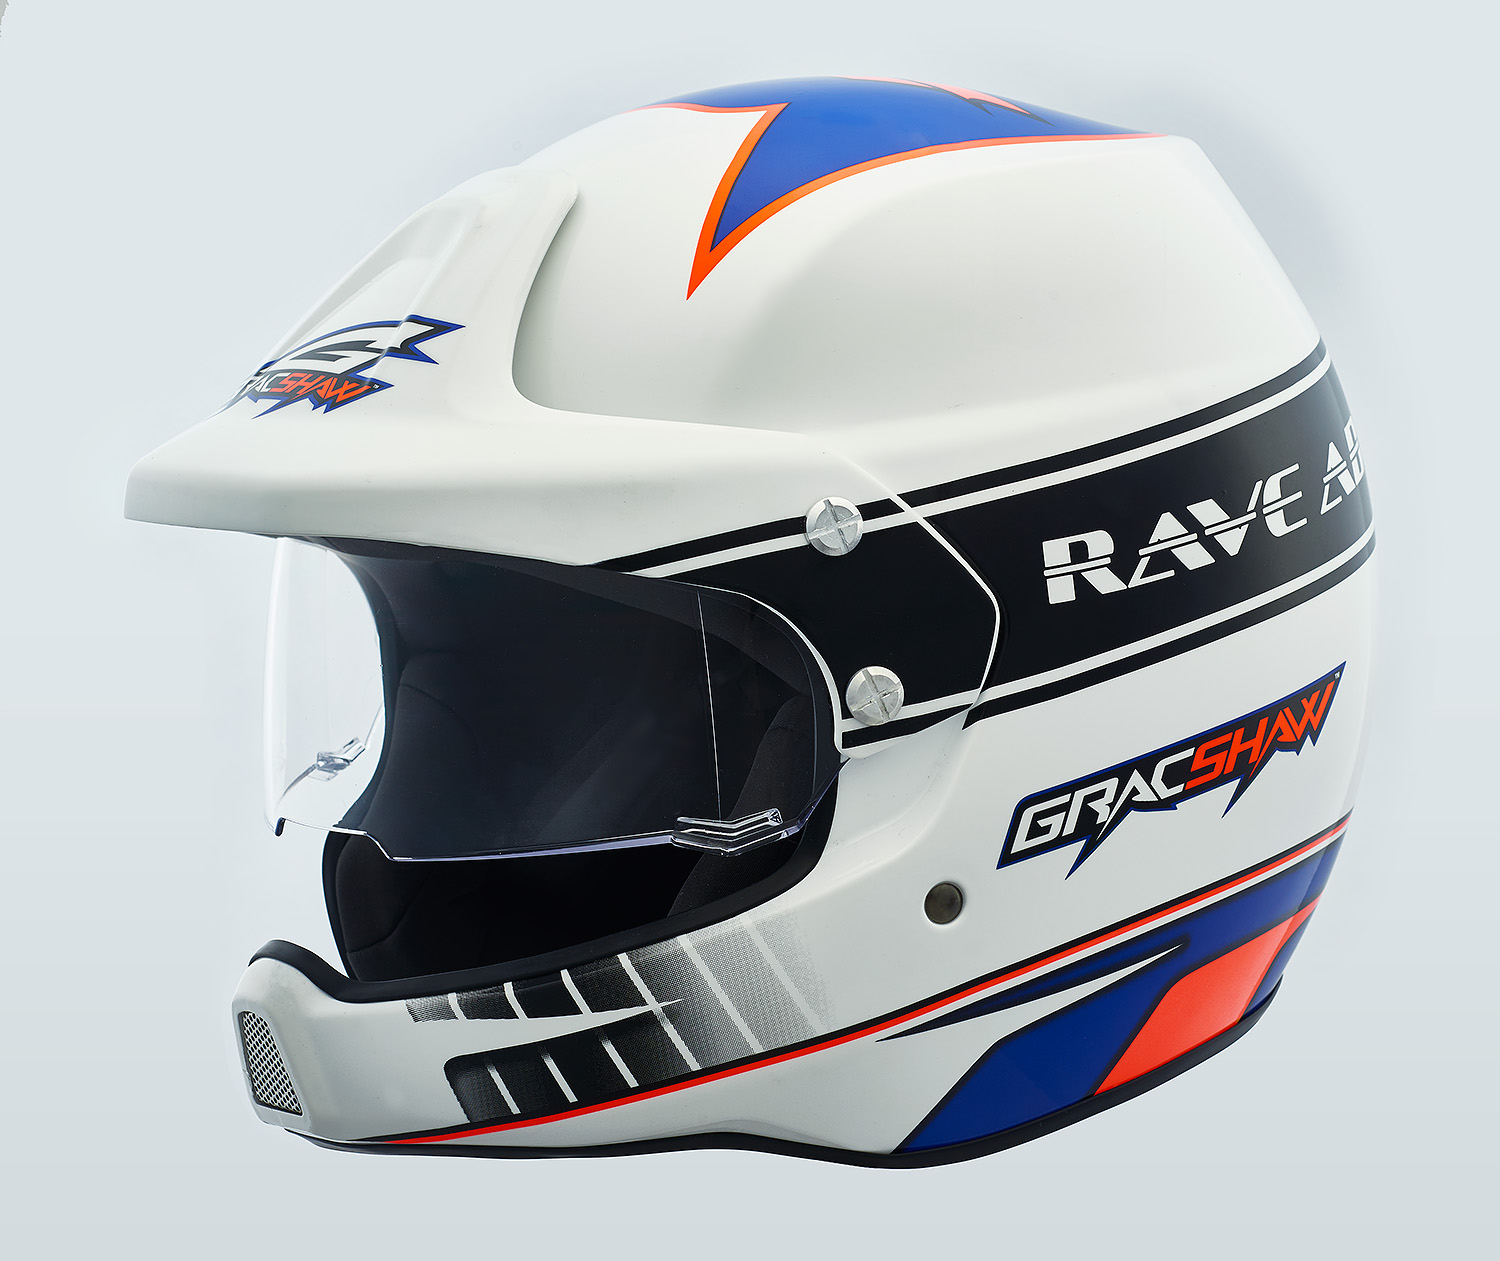 GRACSHAW HELMETS GOES TO NEW HEIGHTS!